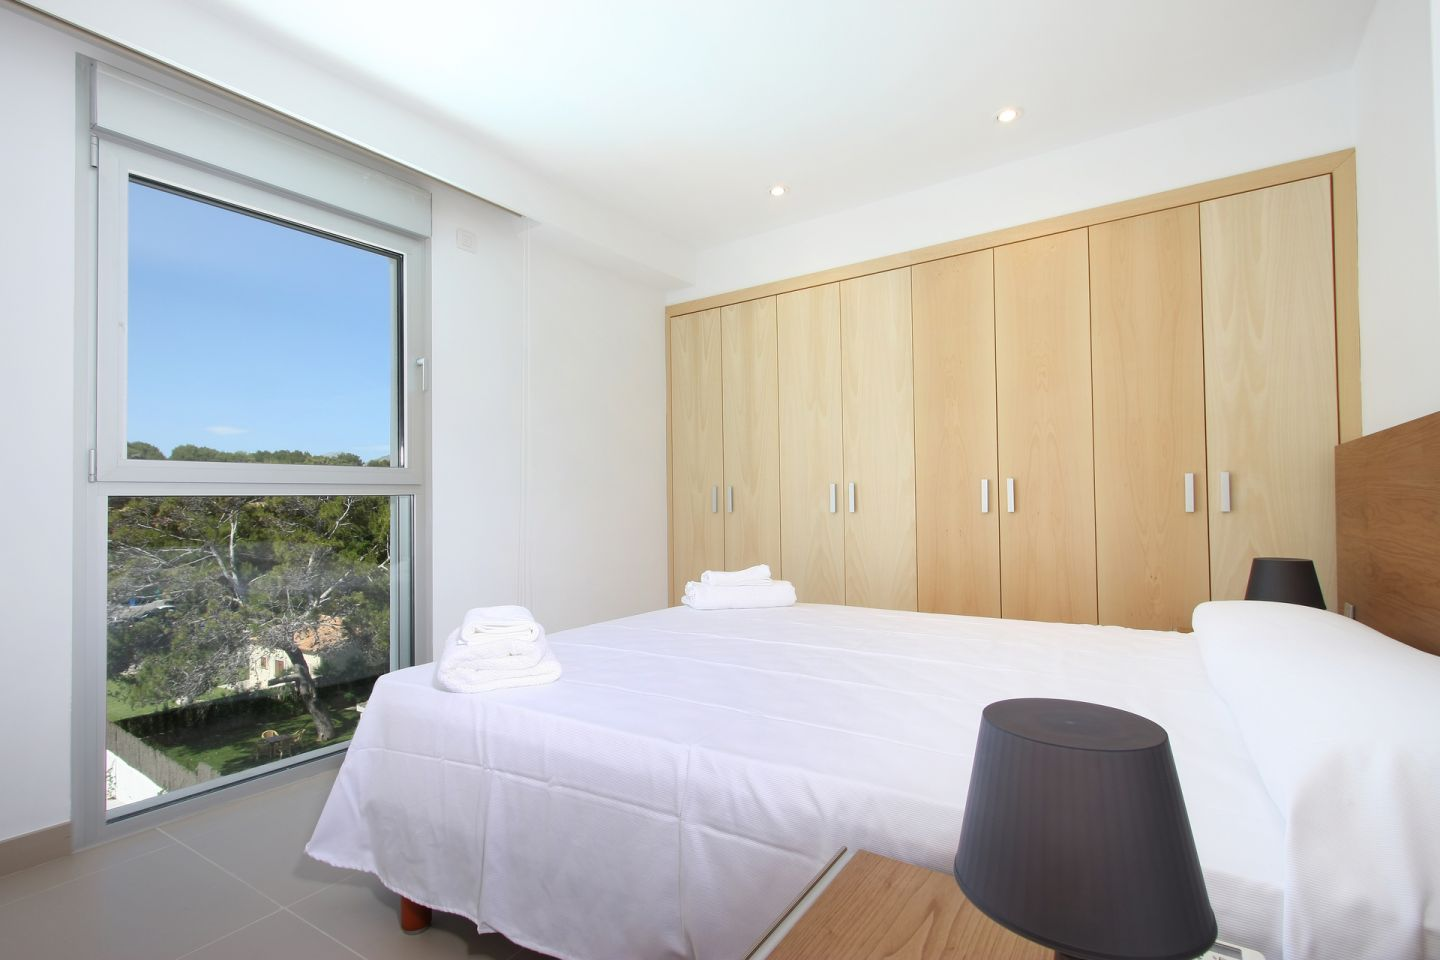 2 Bed Building for sale in Cala San Vicente 9